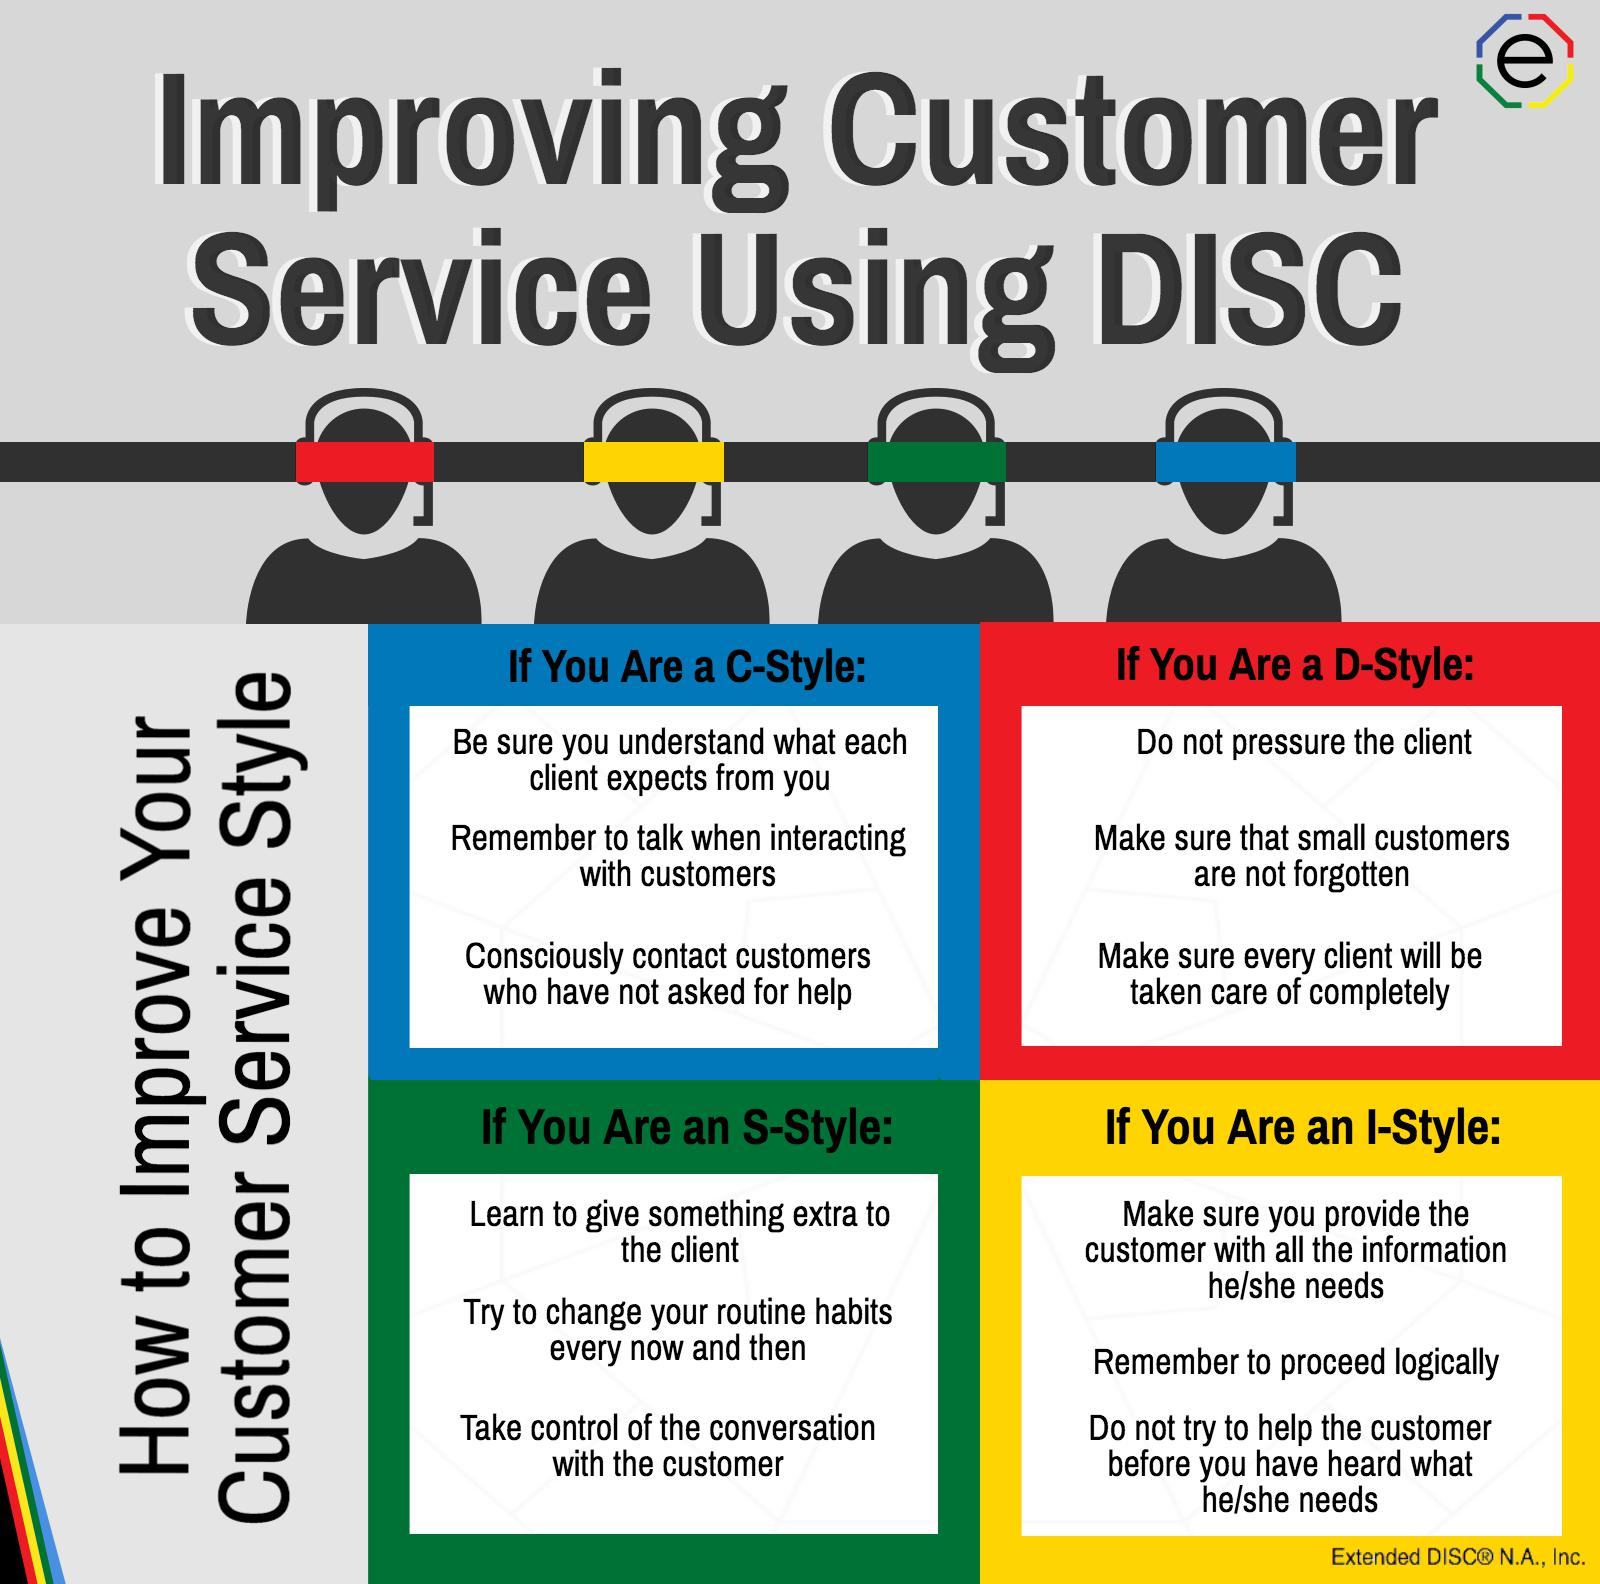 Customer Service Improves Using DISC Ass...